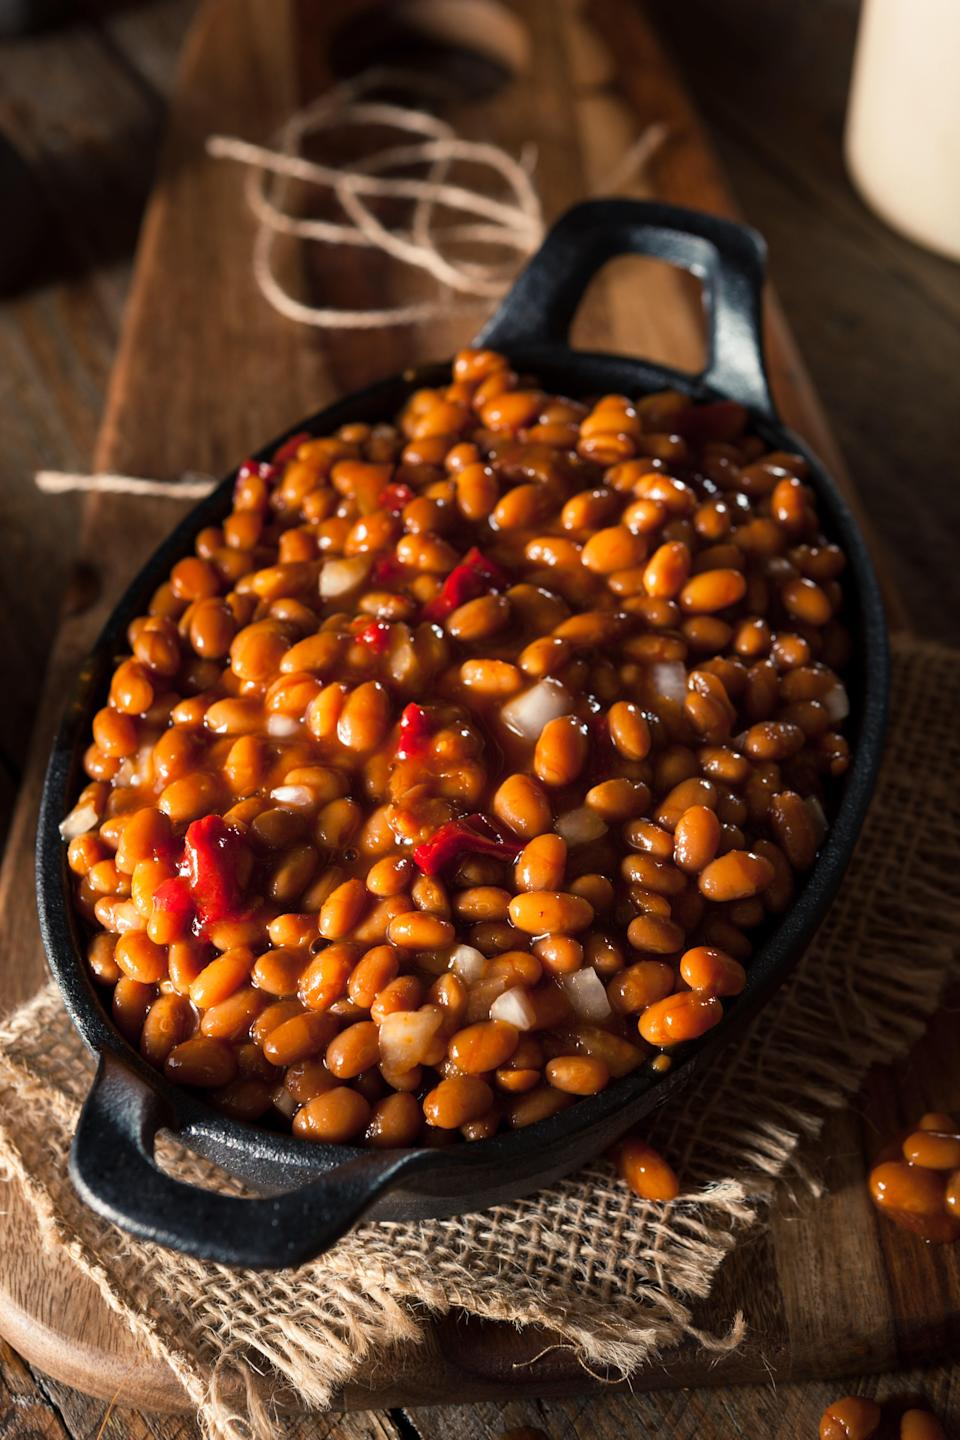 "Okay, technically, this is a grilled legumes, not a grilled vegetables recipe, but since it's an essential side dish for your cookout, and it's prepared on the grill, we felt it important to include in this collection. <a href=""https://www.epicurious.com/recipes/food/views/classic-bbq-baked-beans?mbid=synd_yahoo_rss"" rel=""nofollow noopener"" target=""_blank"" data-ylk=""slk:See recipe."" class=""link rapid-noclick-resp"">See recipe.</a>"